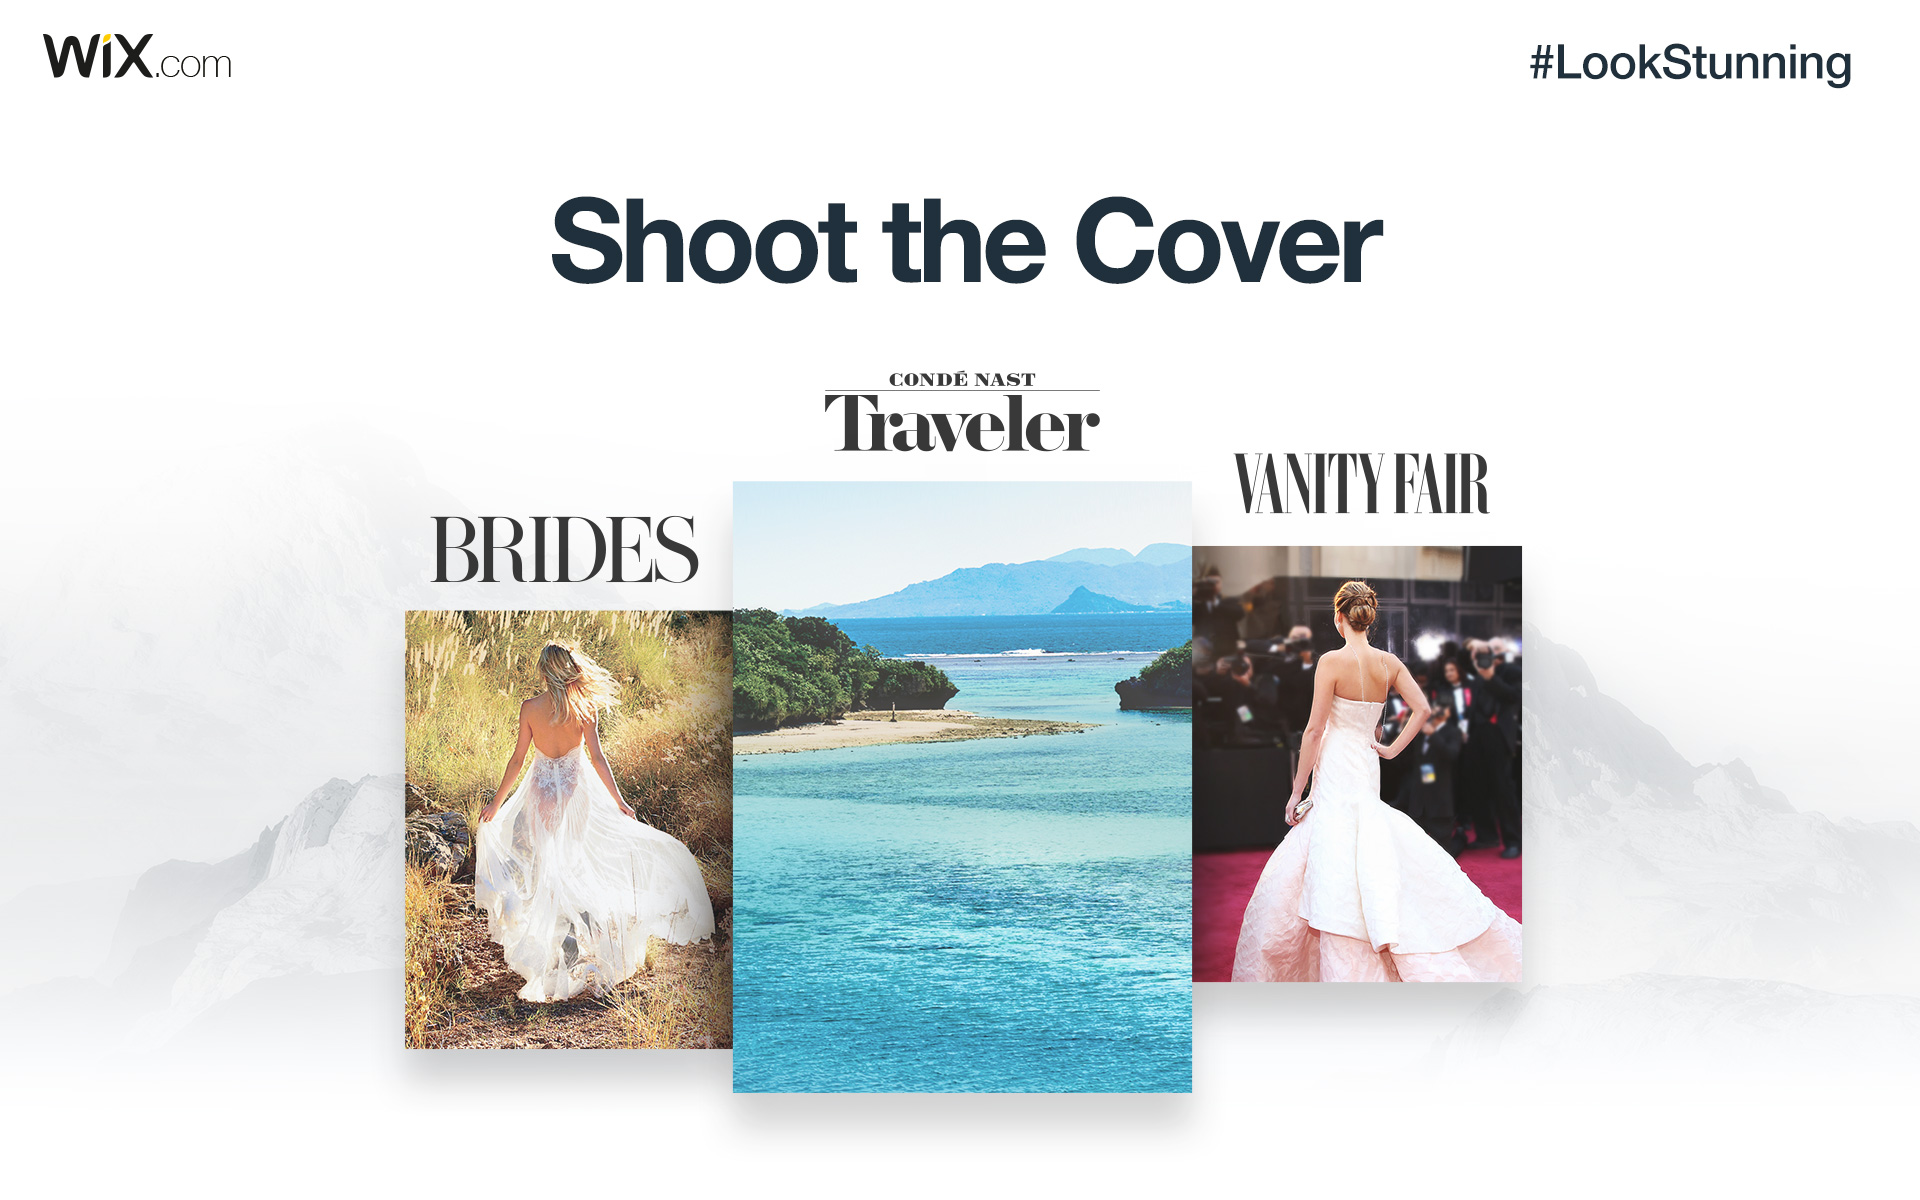 Shoot-the-covers-PR-assets-1